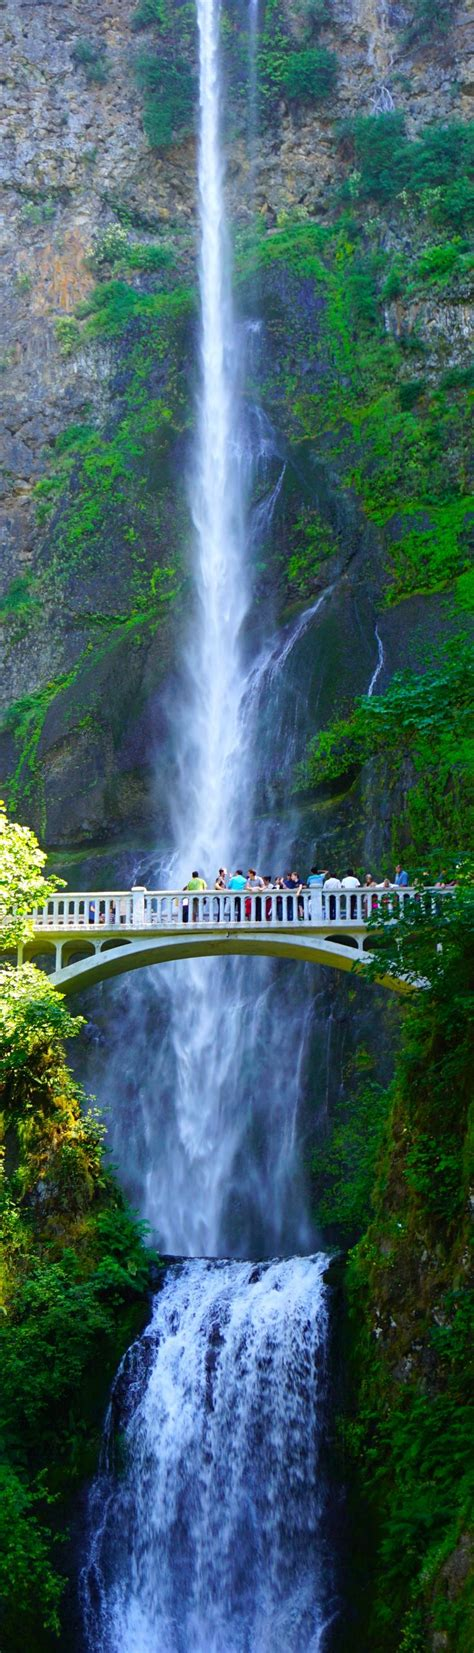 song garden river falls 101 most beautiful places you must visit before you die